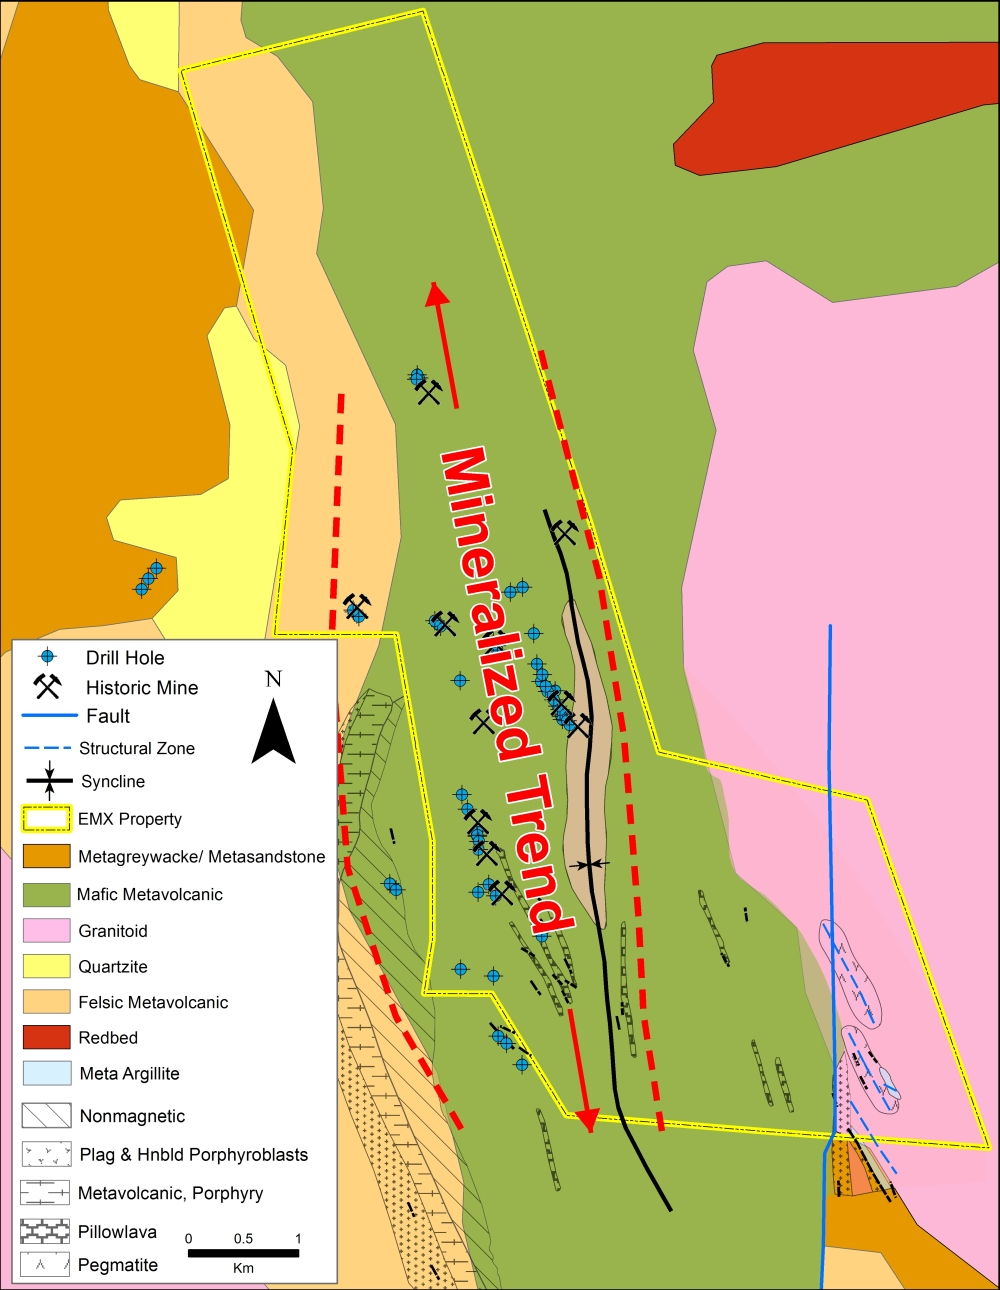 Geology of the Guldgruvan area. Mafic volcanic, diabasic intrusive, and local carbonate-hosted Cu-Ni-Co-Zn-Pb-Ag-Au mineralization as veins and replacements as well as local massive sulfide horizons